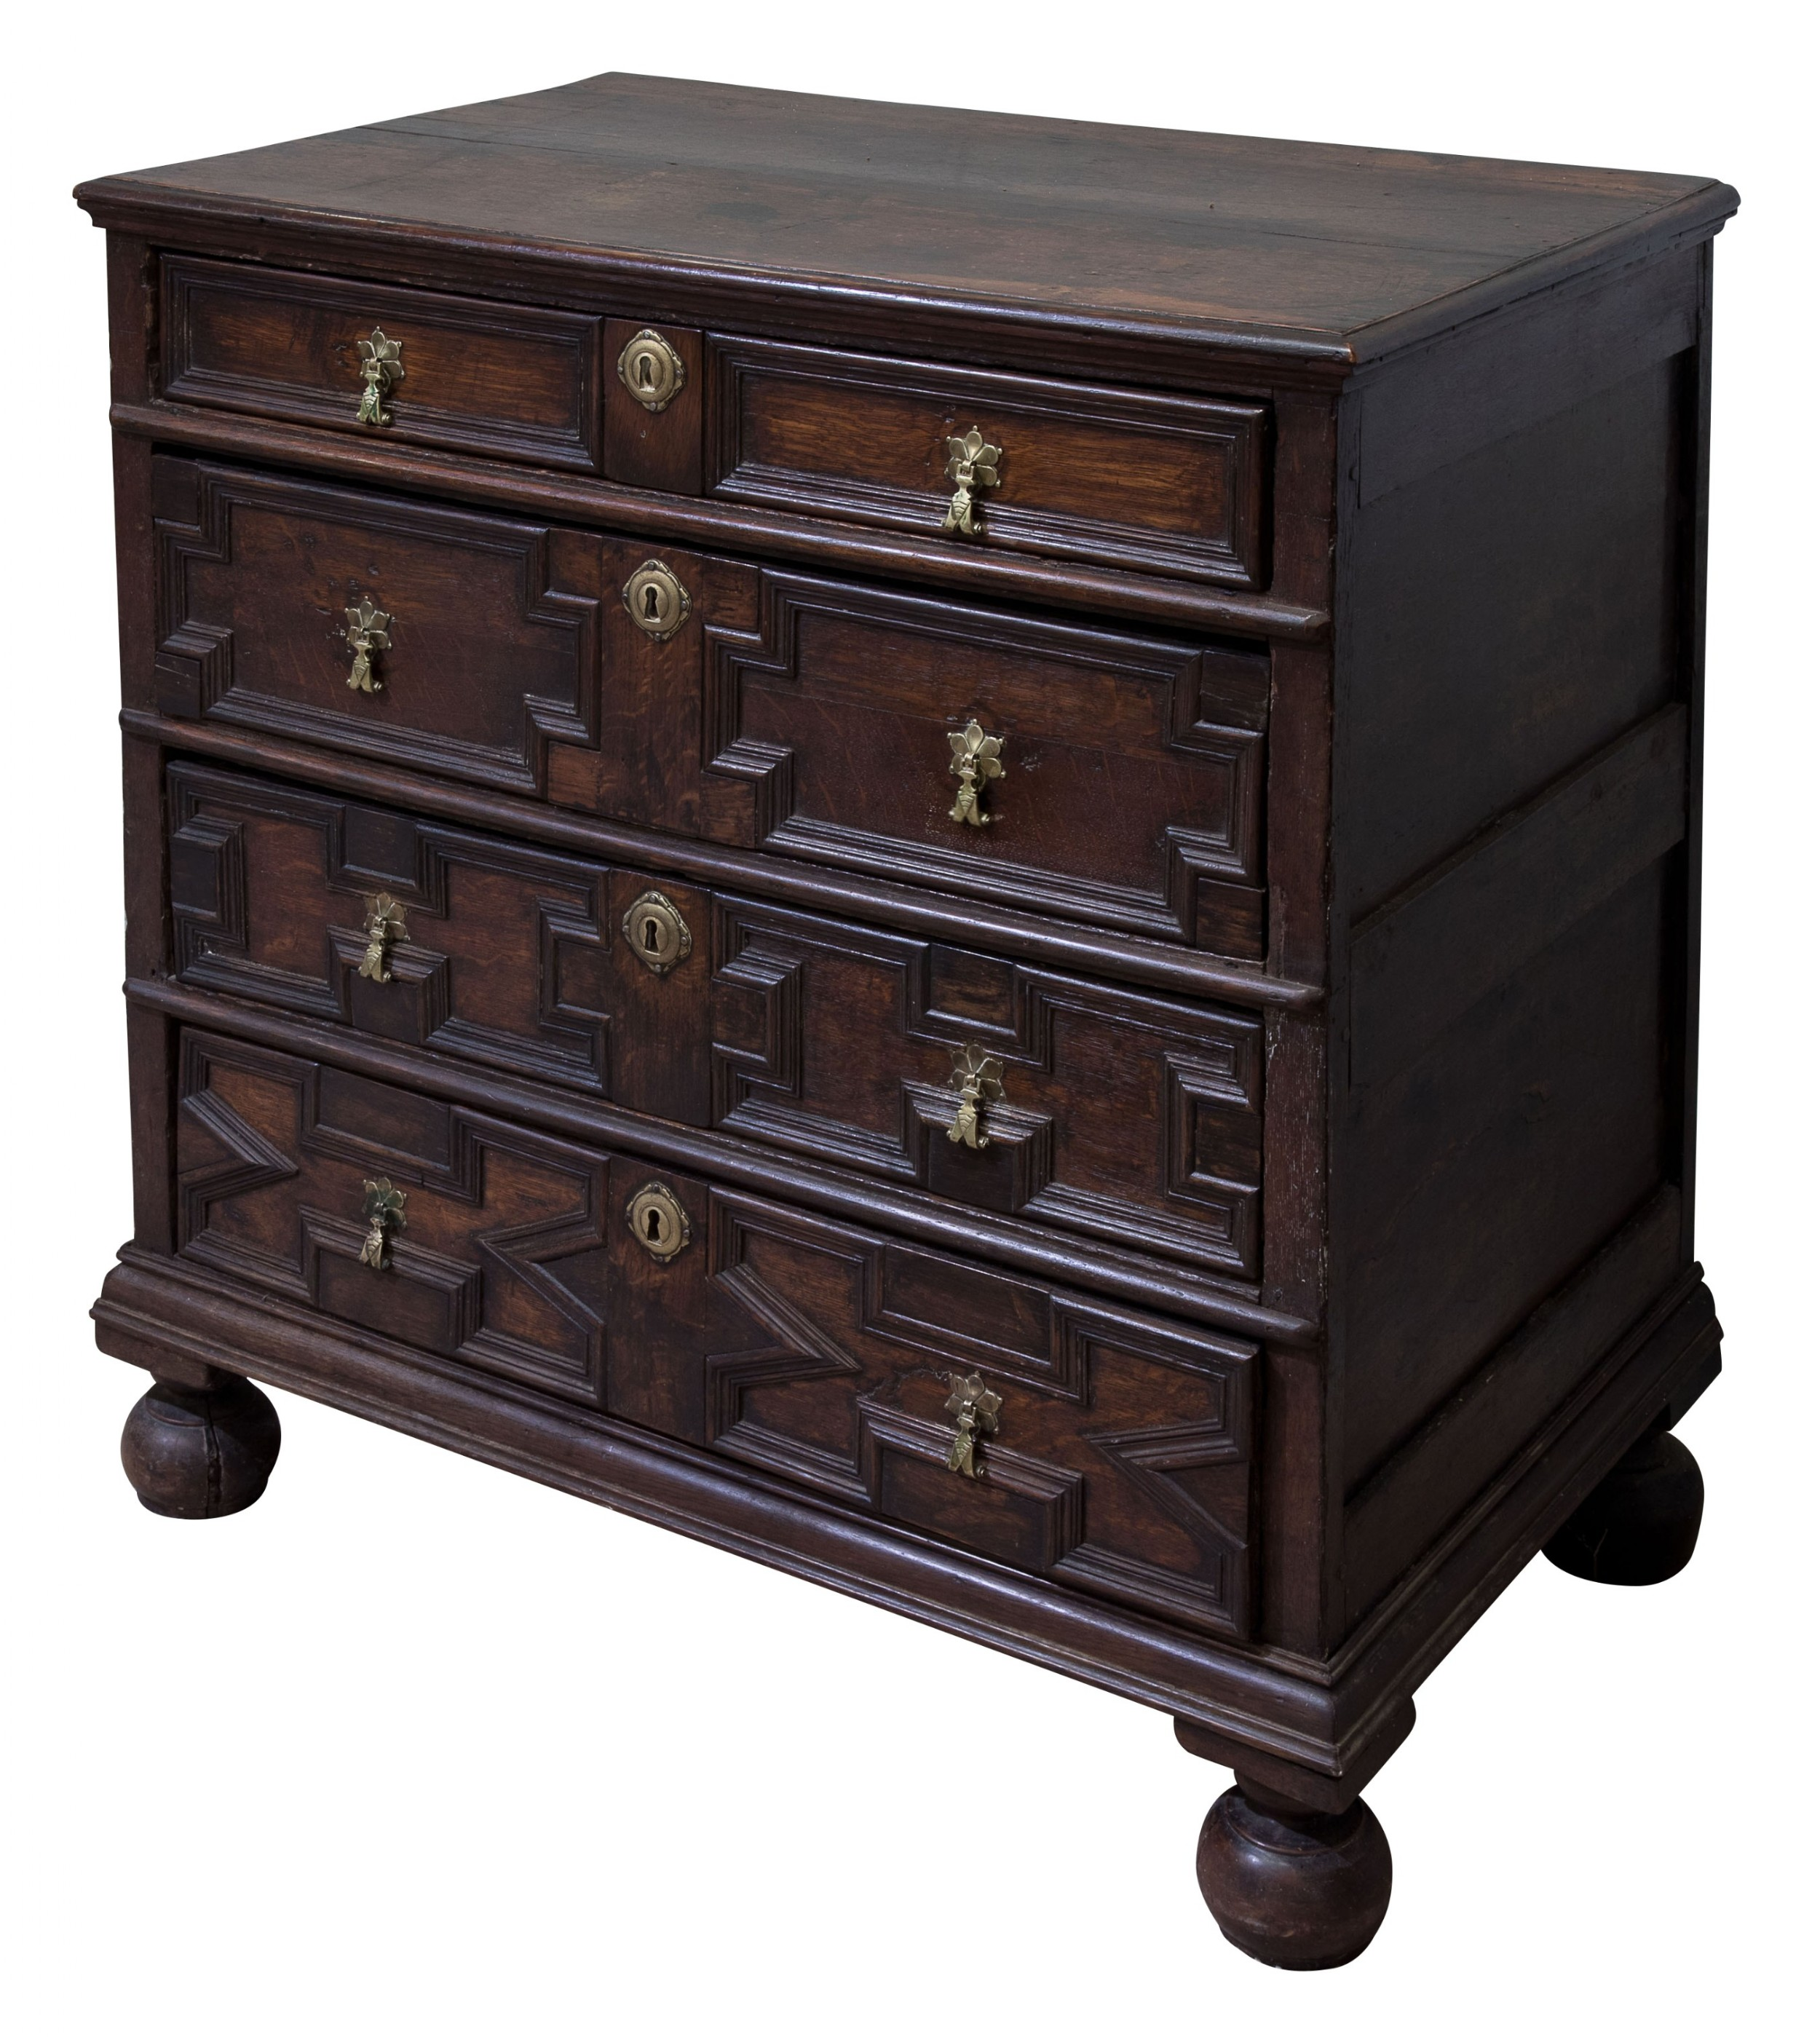 william mary period moulded front oak chest on bun feet c1690